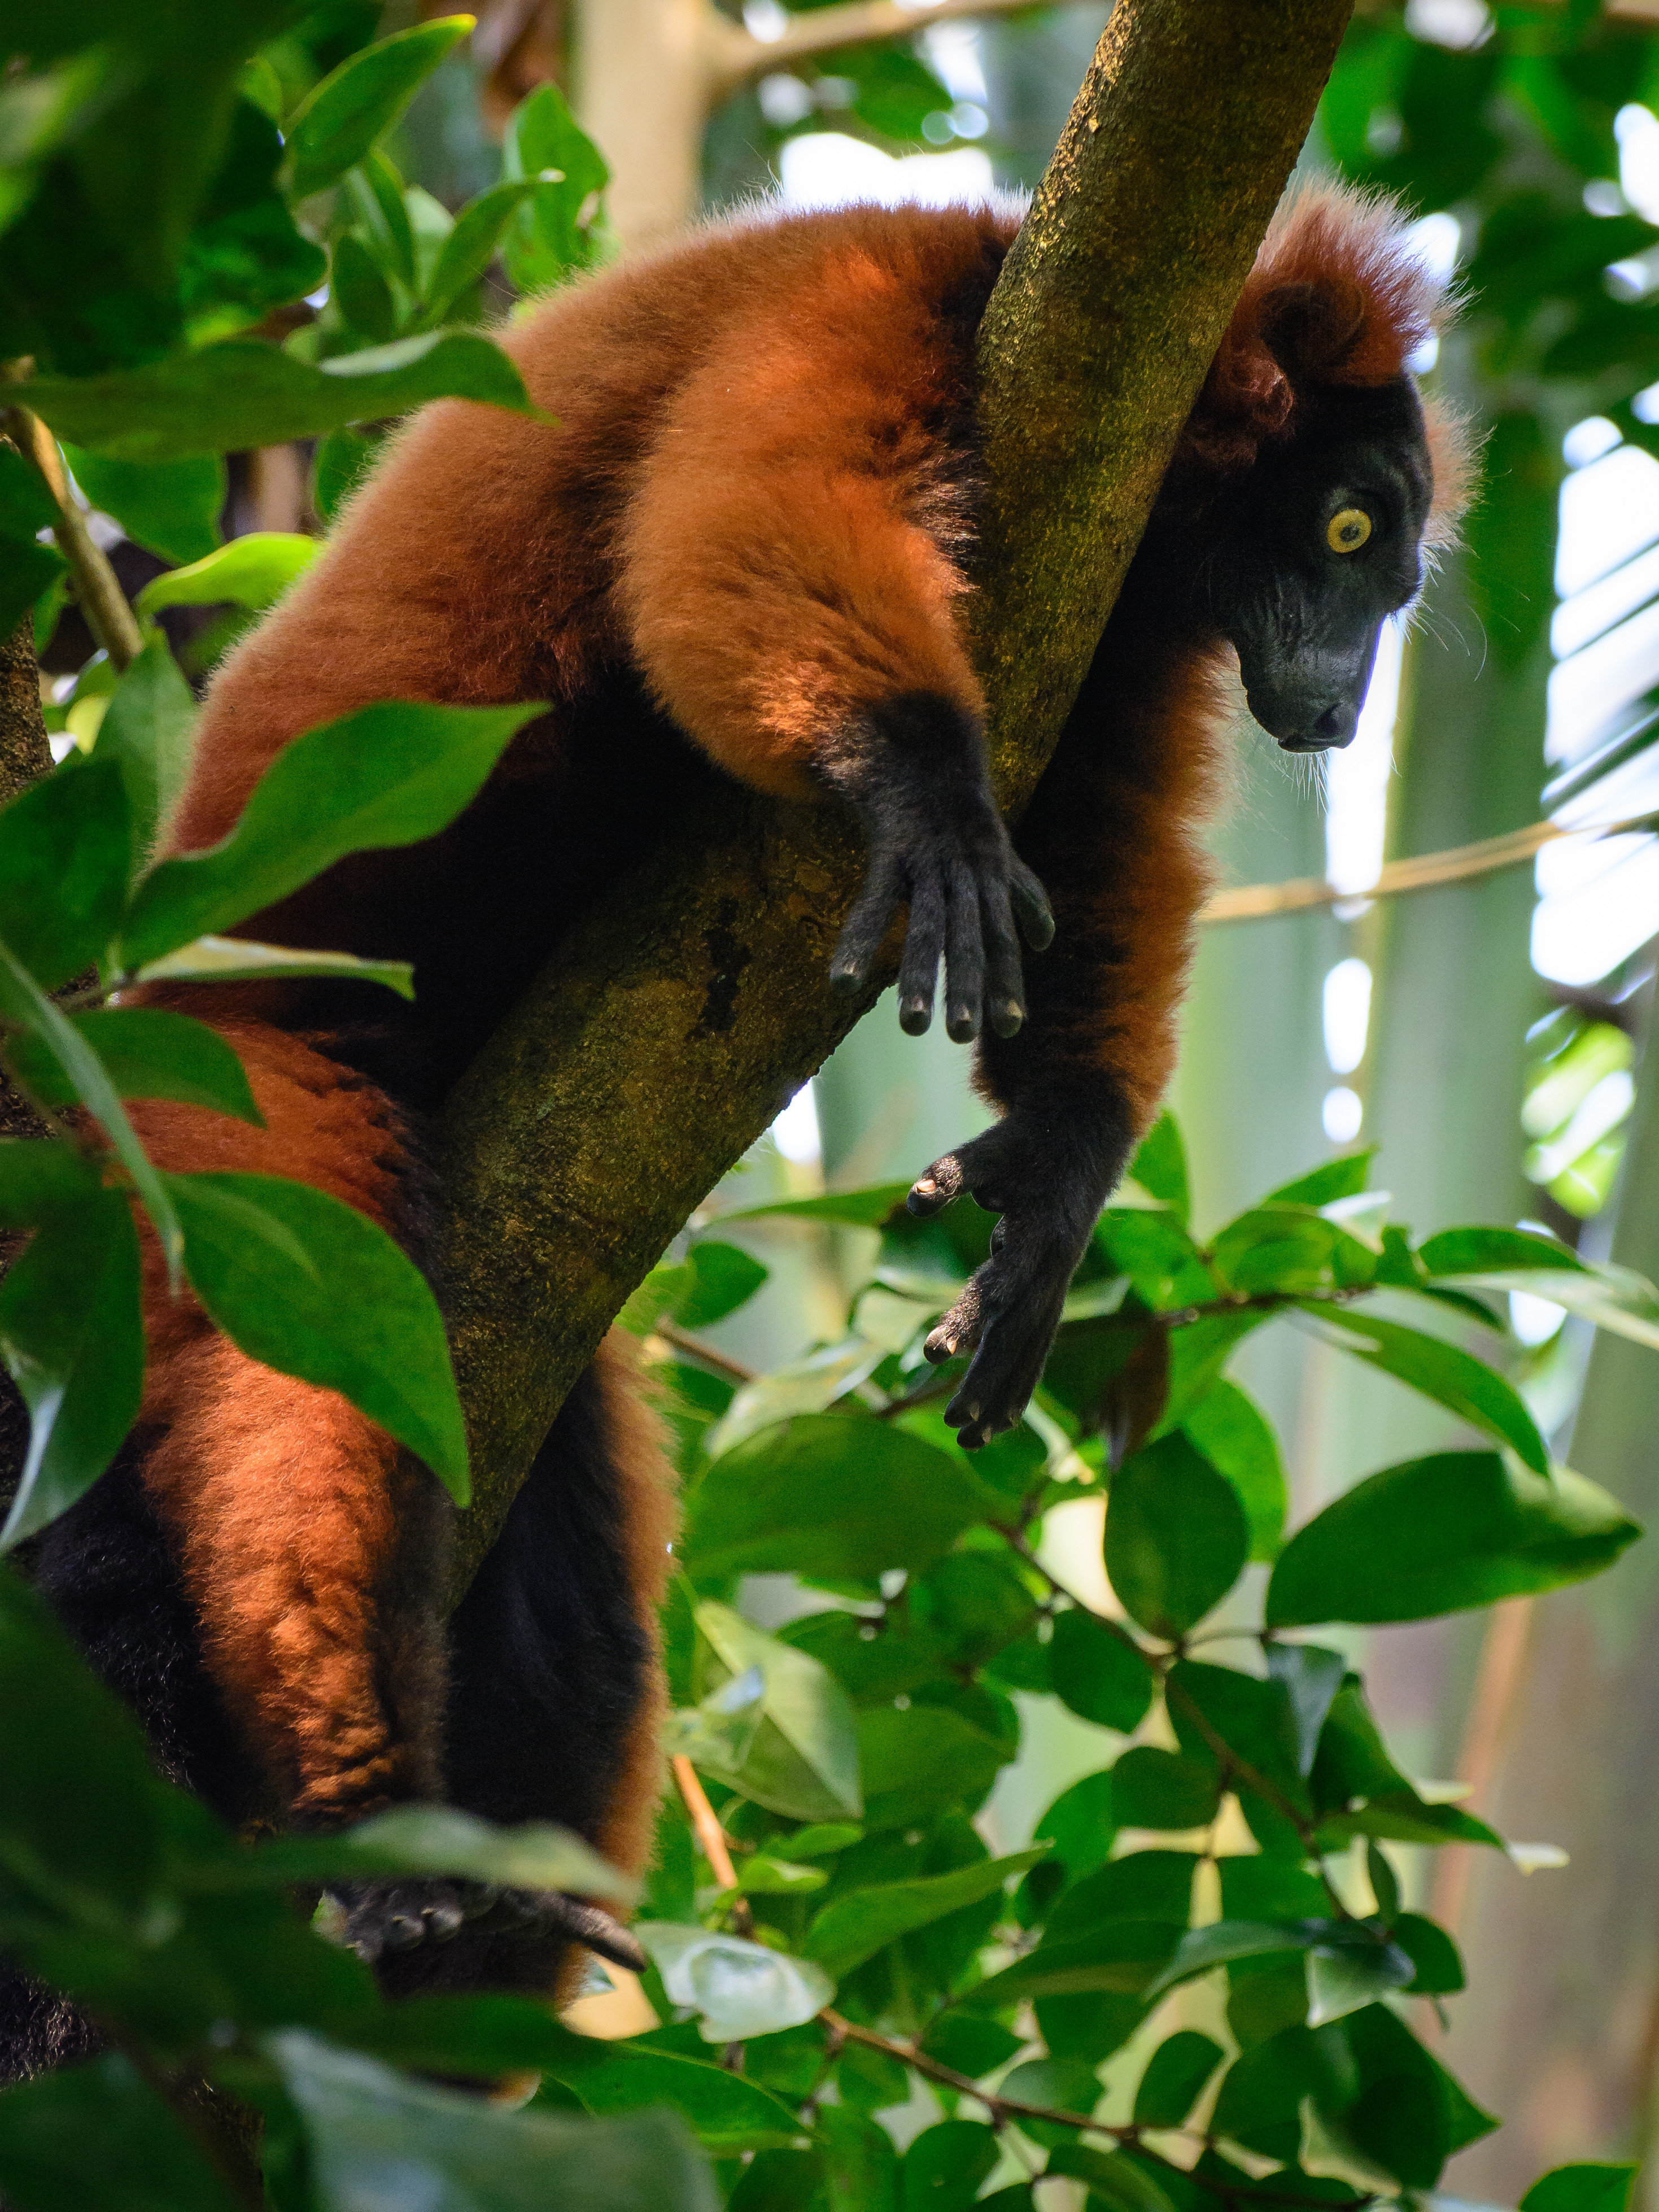 97917 download wallpaper Animals, Lemur, Animal, Wood, Tree screensavers and pictures for free